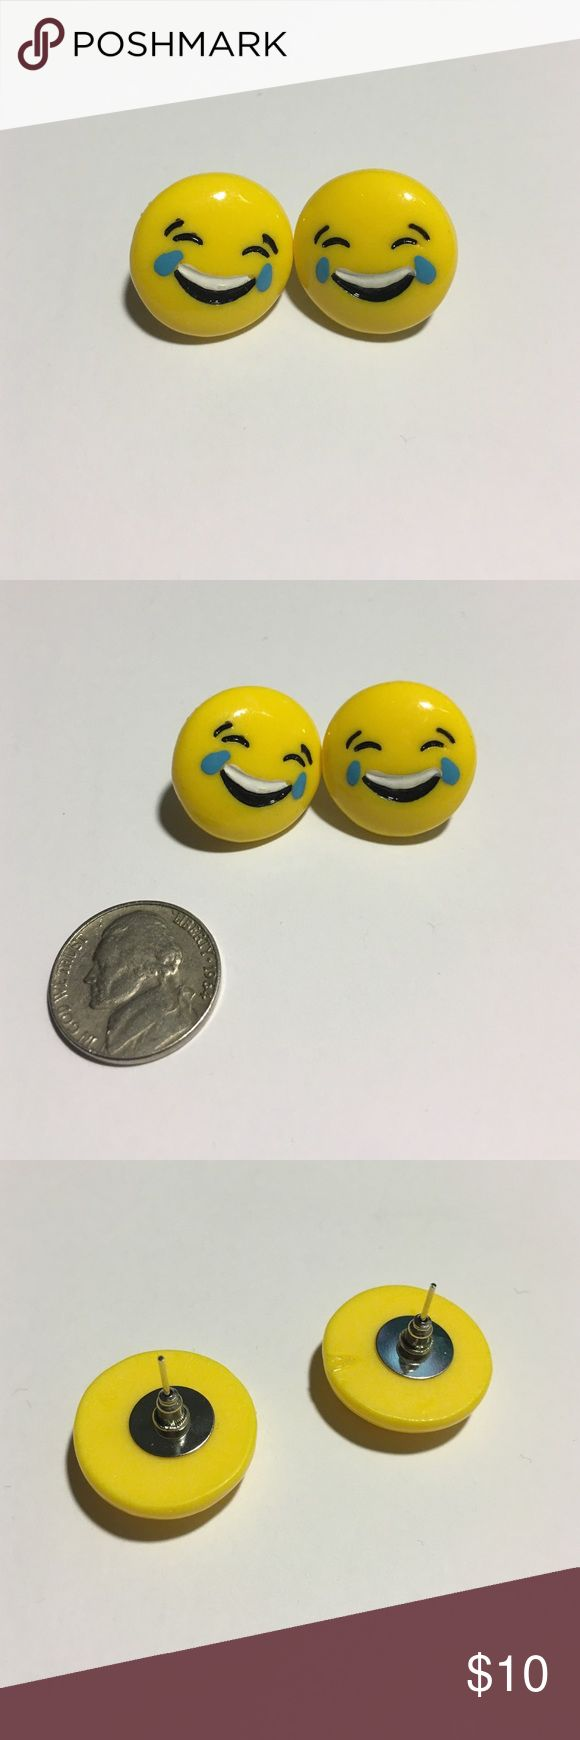 😂 Yellow Crying Laughing Emoji Stud Earrings 😂 Stunning yellow emoji laughing crying stud earrings in amazing condition. No damage. Super chic and stylish! Cotton Jangle Boutique Jewelry Earrings